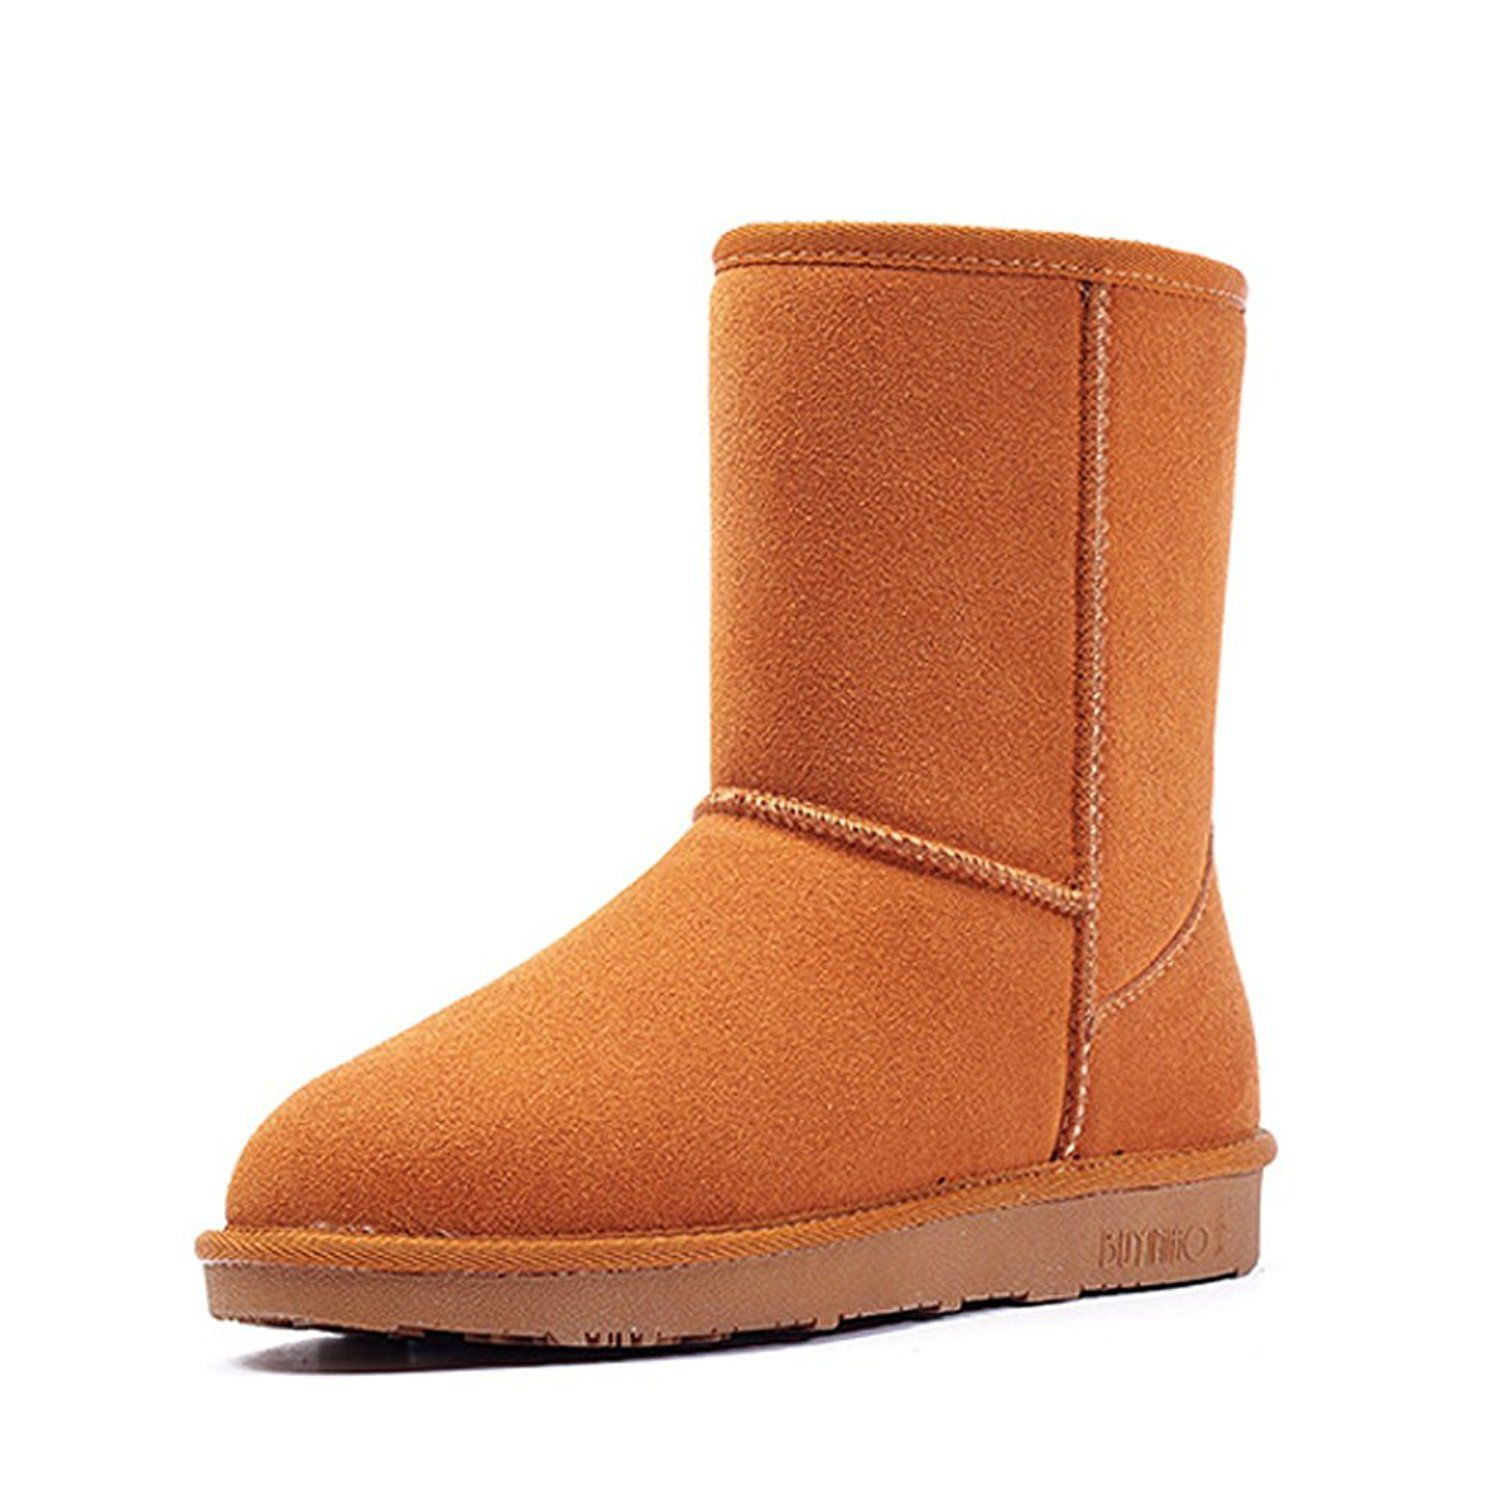 30f73f86c8d Unisex Leather Winter Outdoor Flat Mid-Calf Snow Boots -- You can find more  details by visiting the image link.